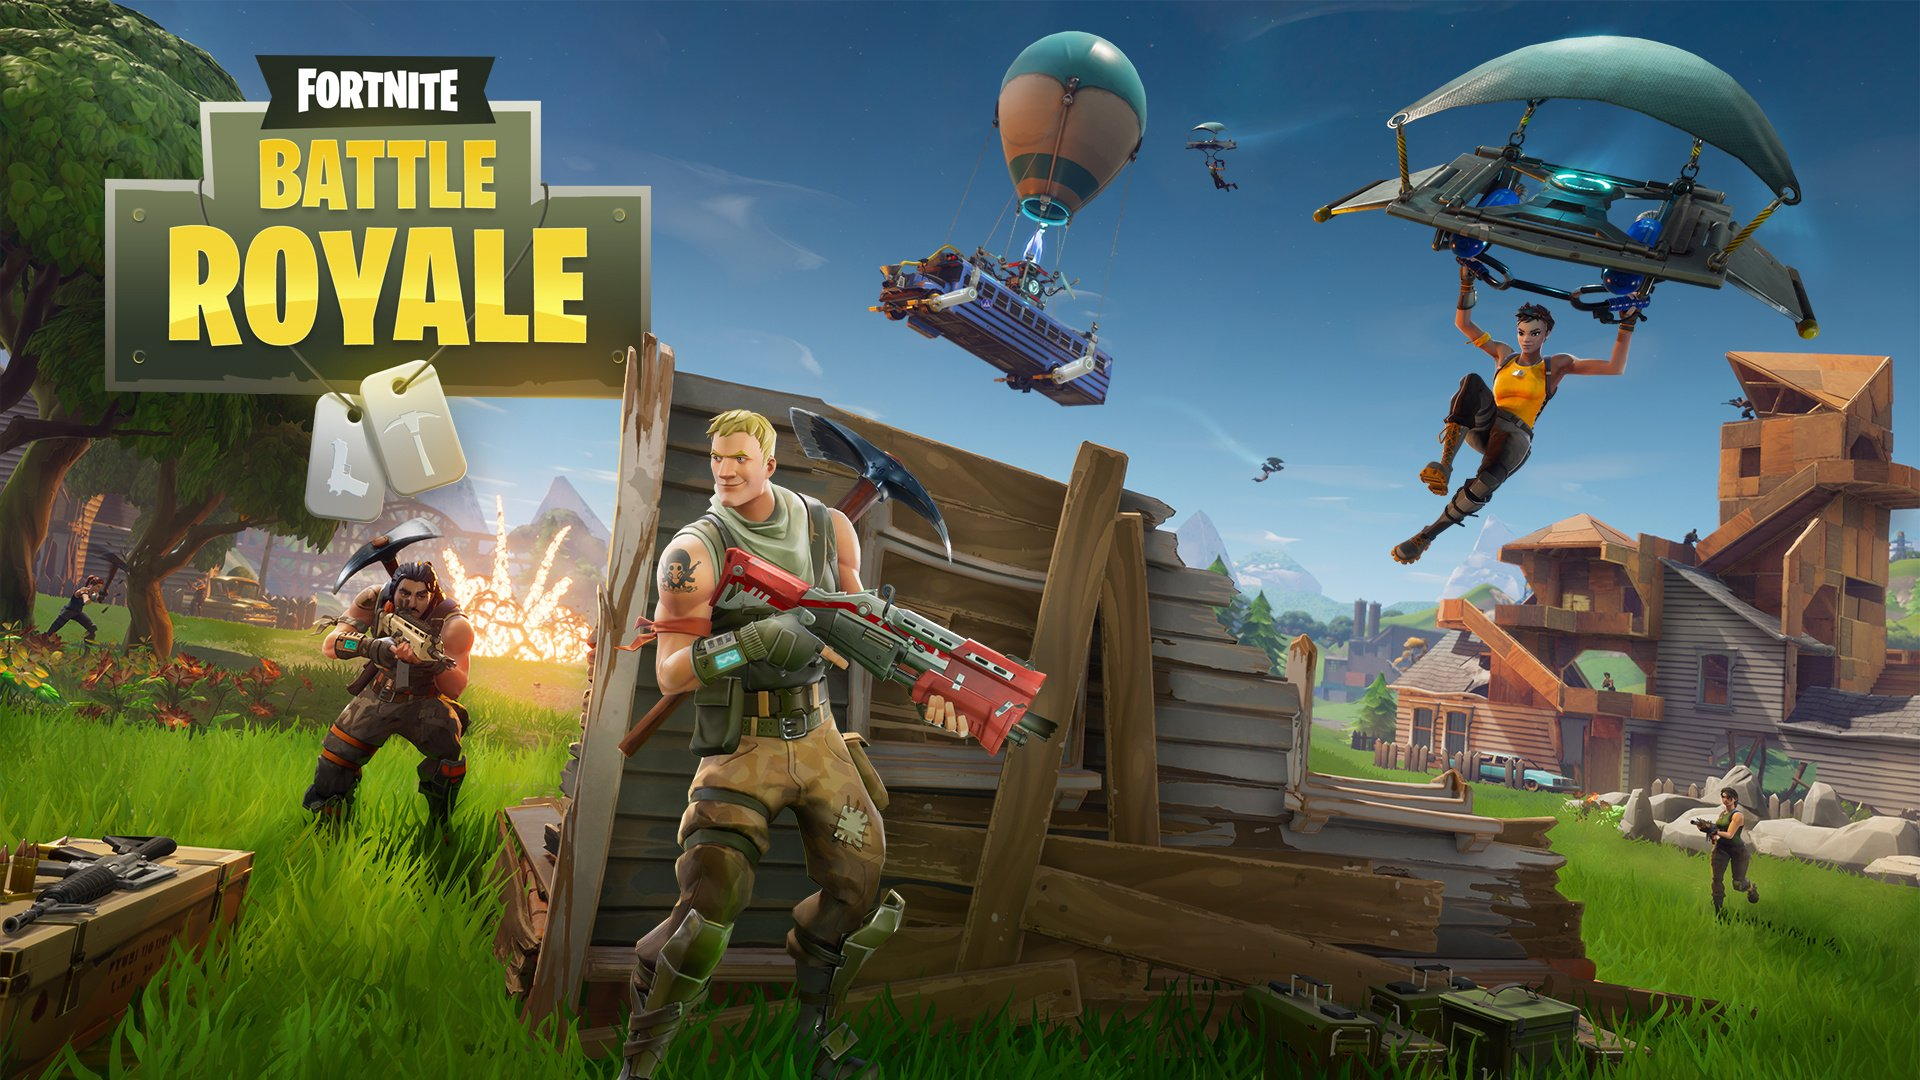 Fortnite Battle Royale Ps4 How To Play For Free Guide Push Square